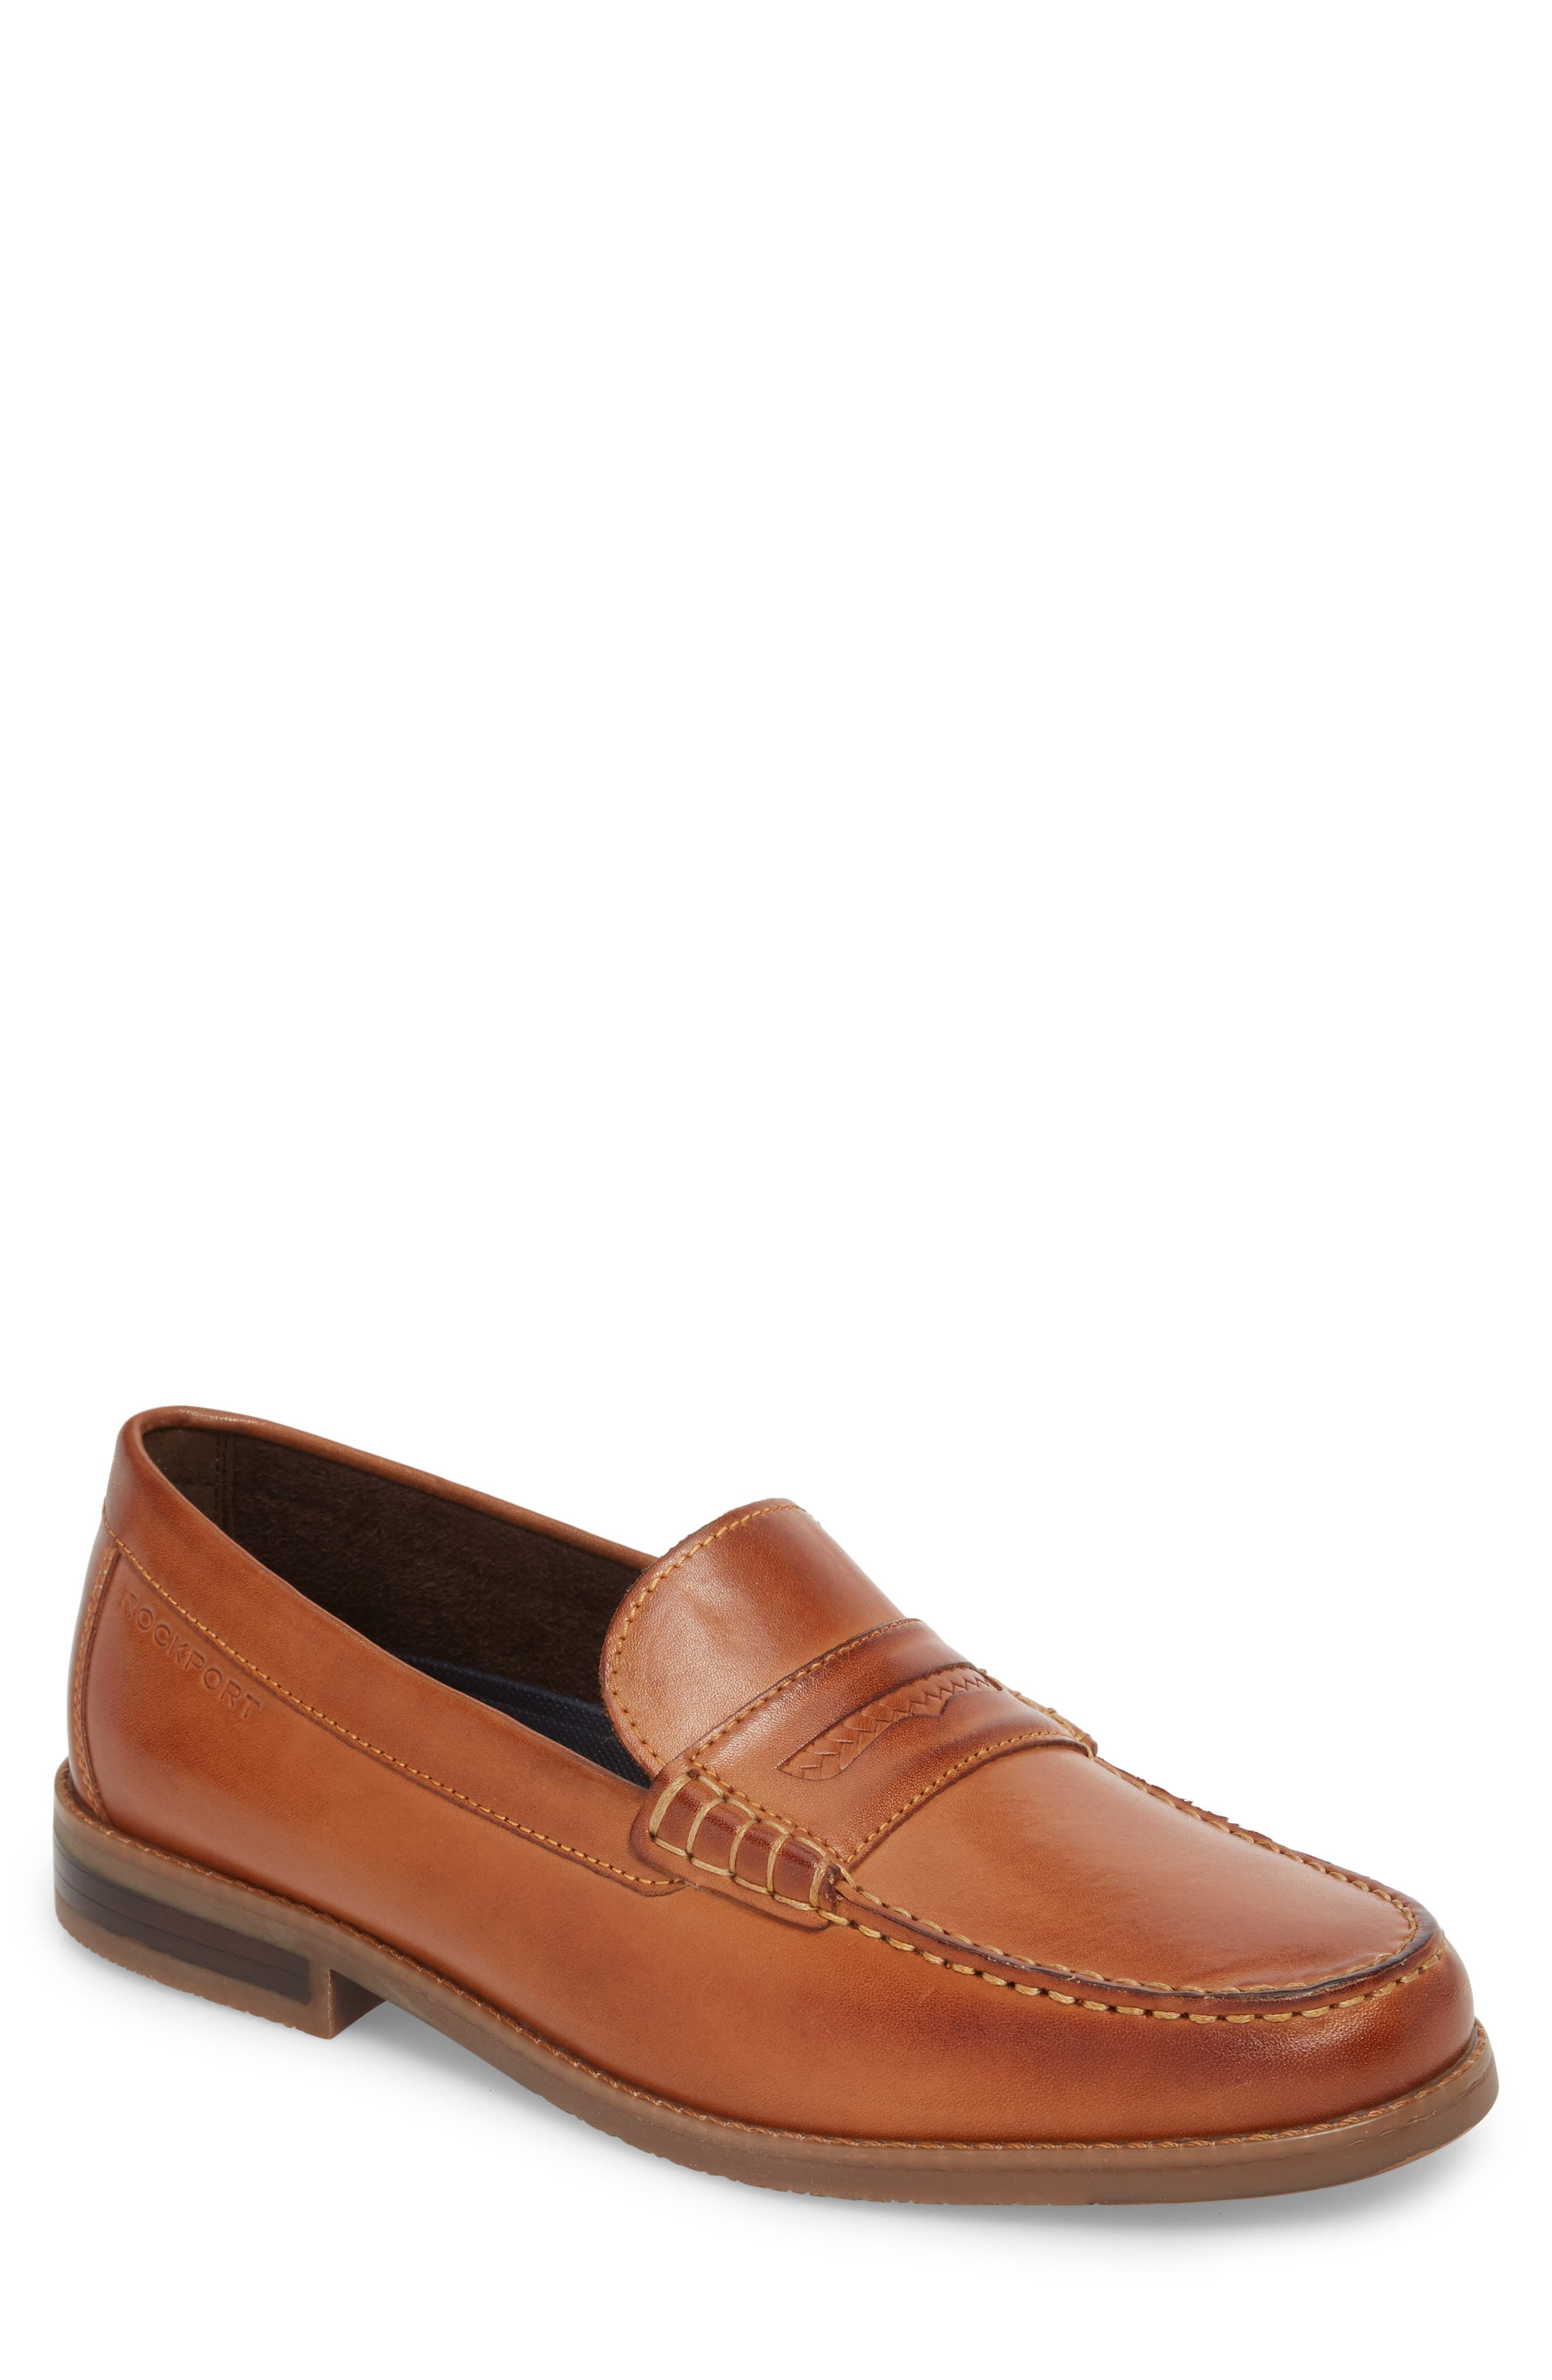 Cayleb Moc Toe Penny Loafer,                         Main,                         color, 231